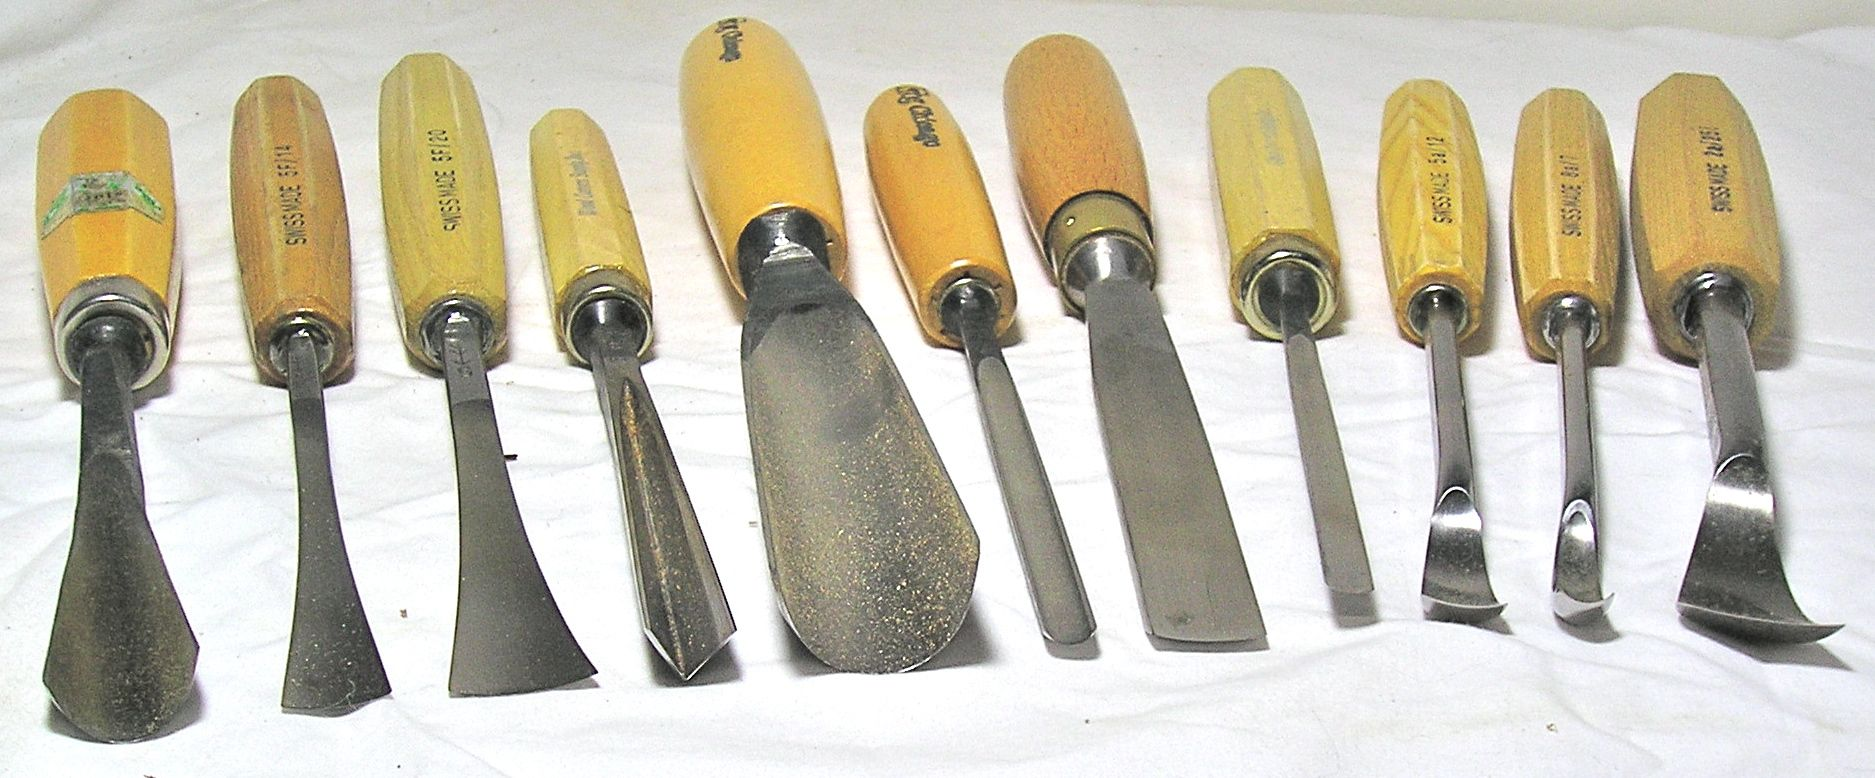 wood carving gouges